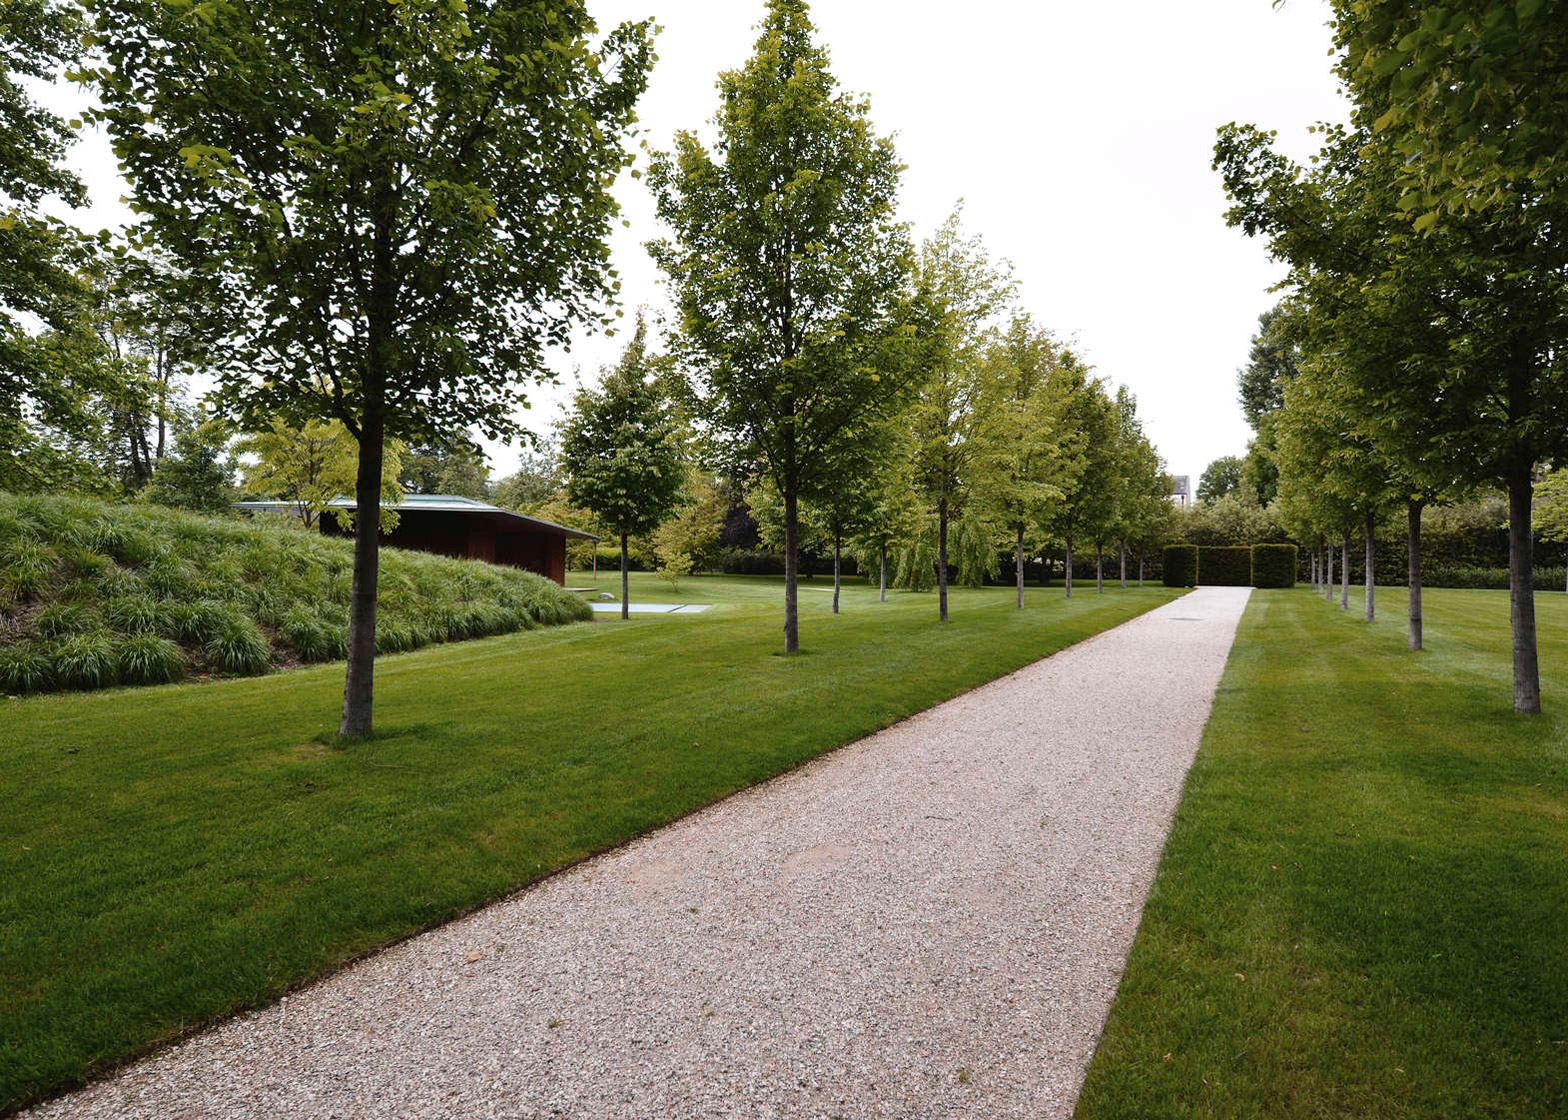 Meditation Pavilion and Garden in Geneva by GM Architectes Associes